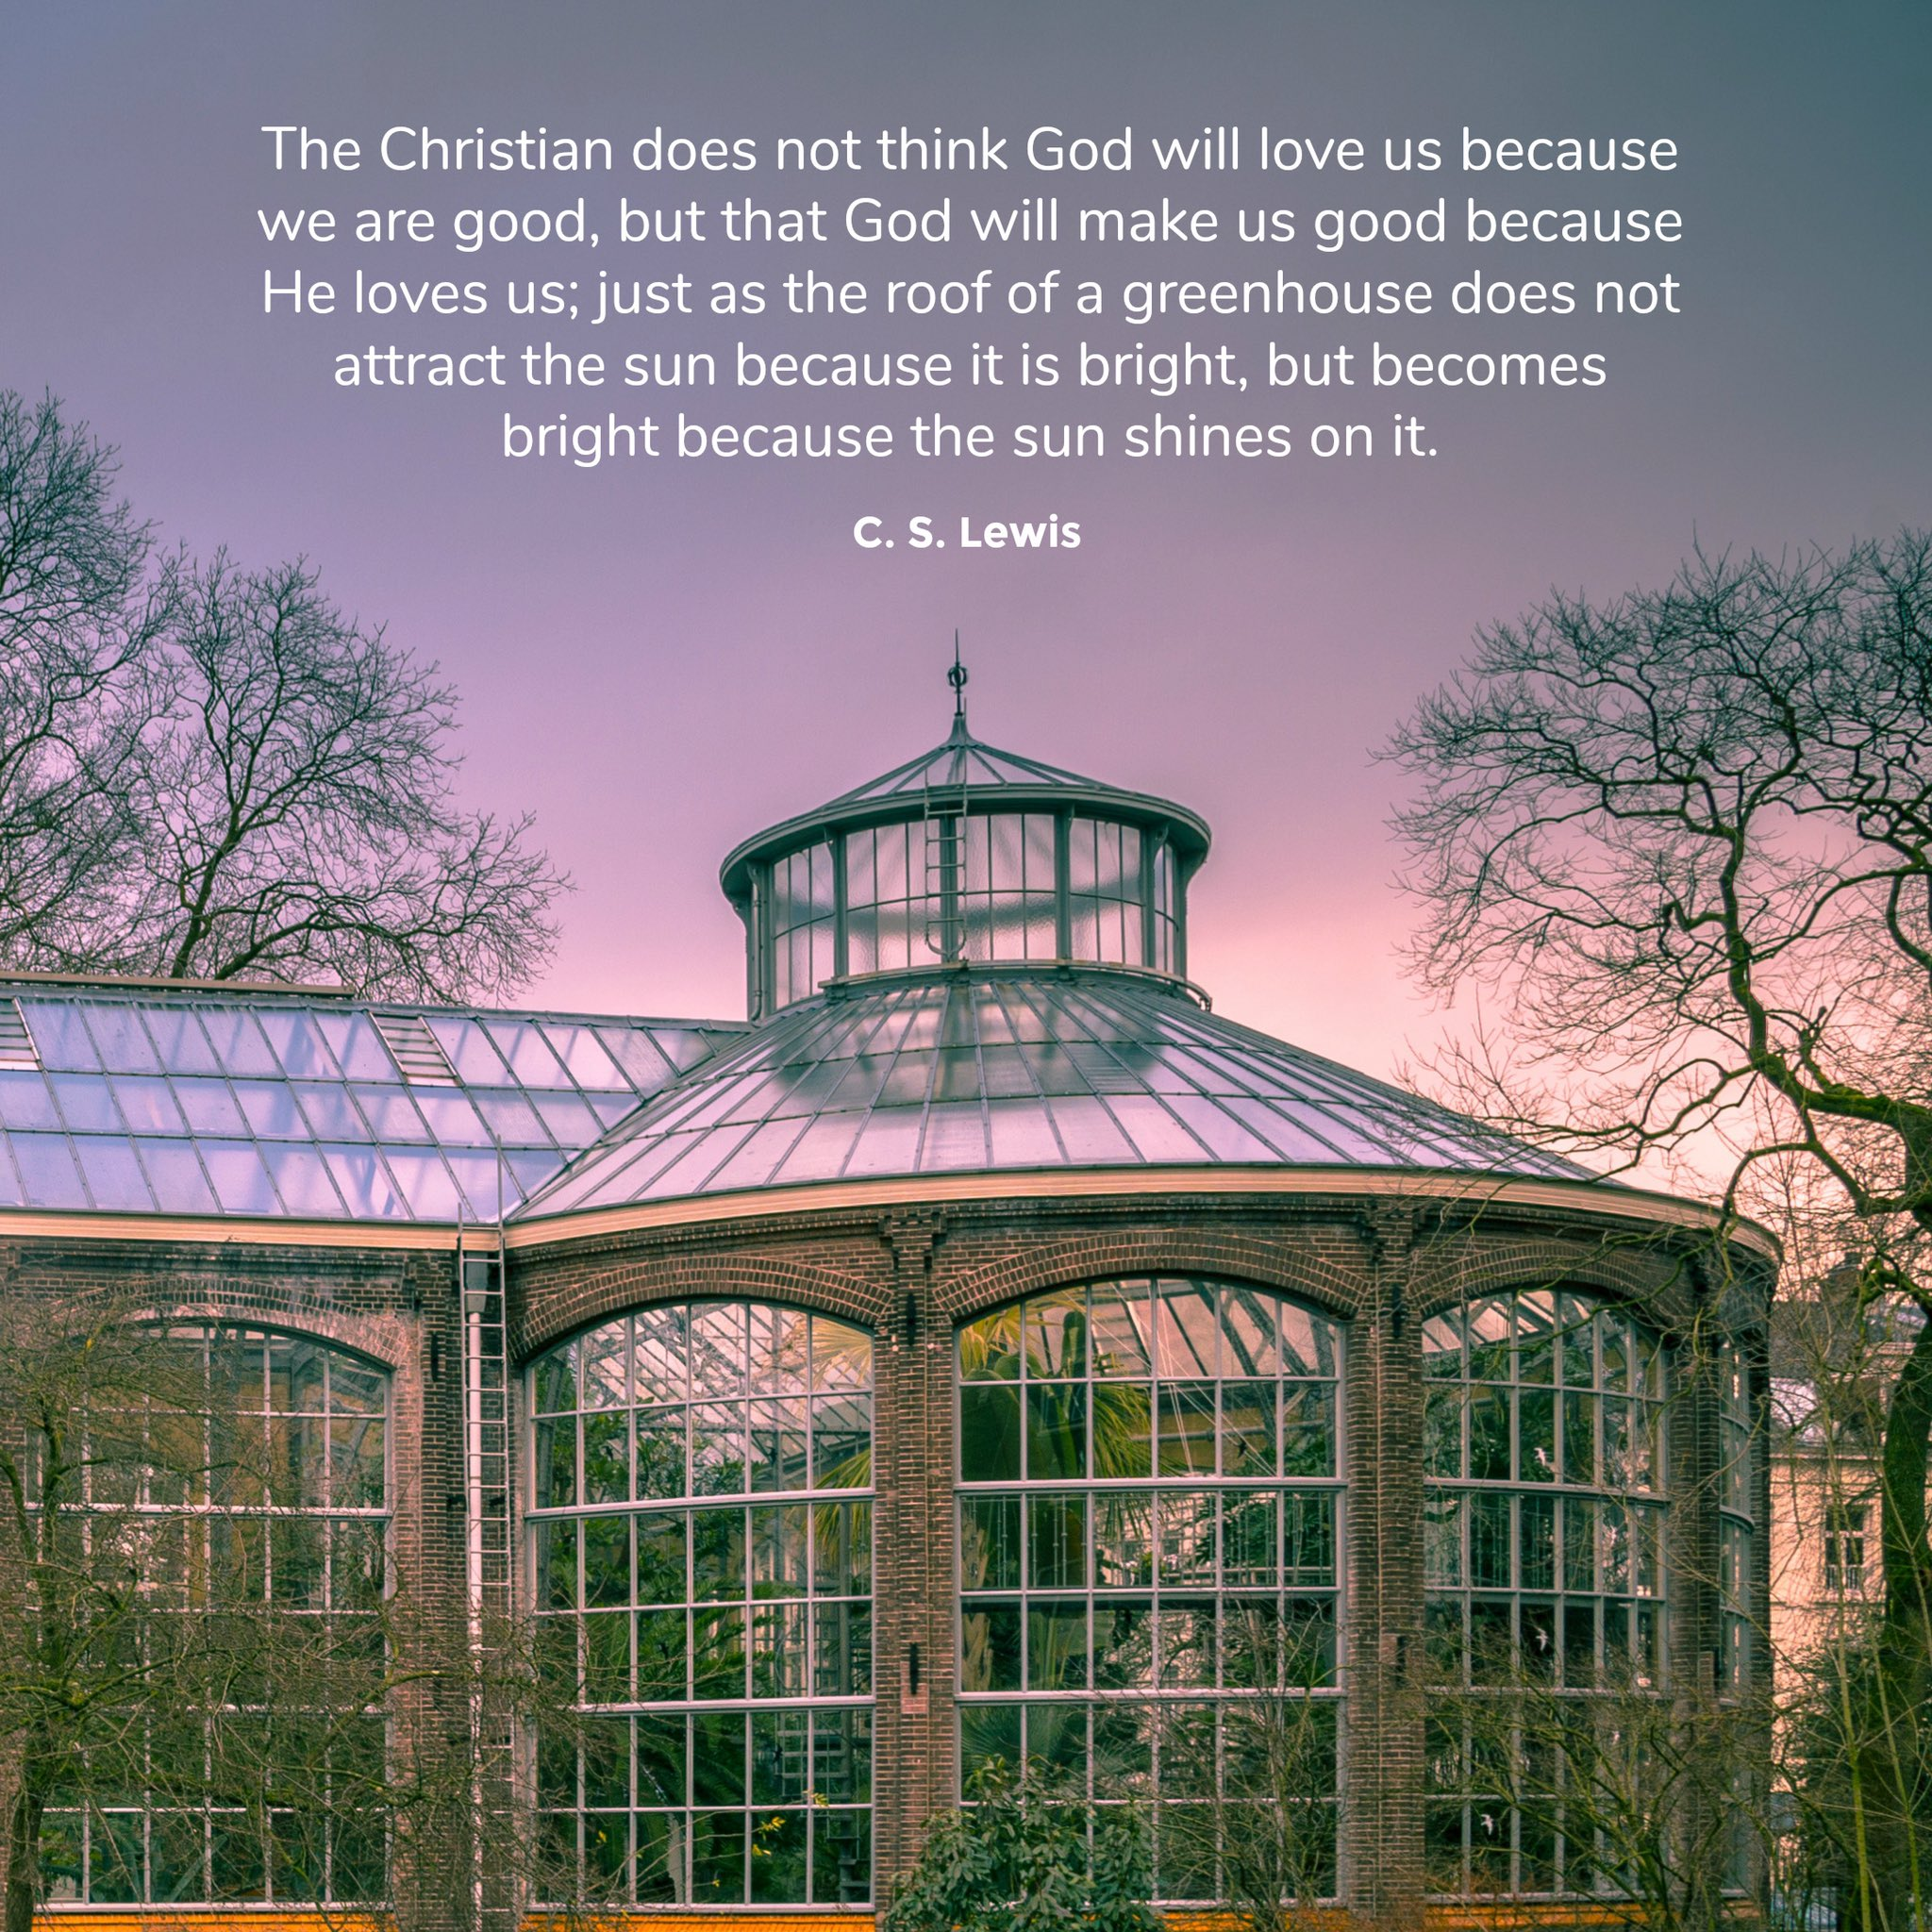 """The Christian does not think God will love us because we are good, but that God will make us good because He loves us; just as the roof of a greenhouse does not attract the sun because it is bright, but becomes bright because the sun shines on it."" #CSLewis https://t.co/ThFdOuspeI"